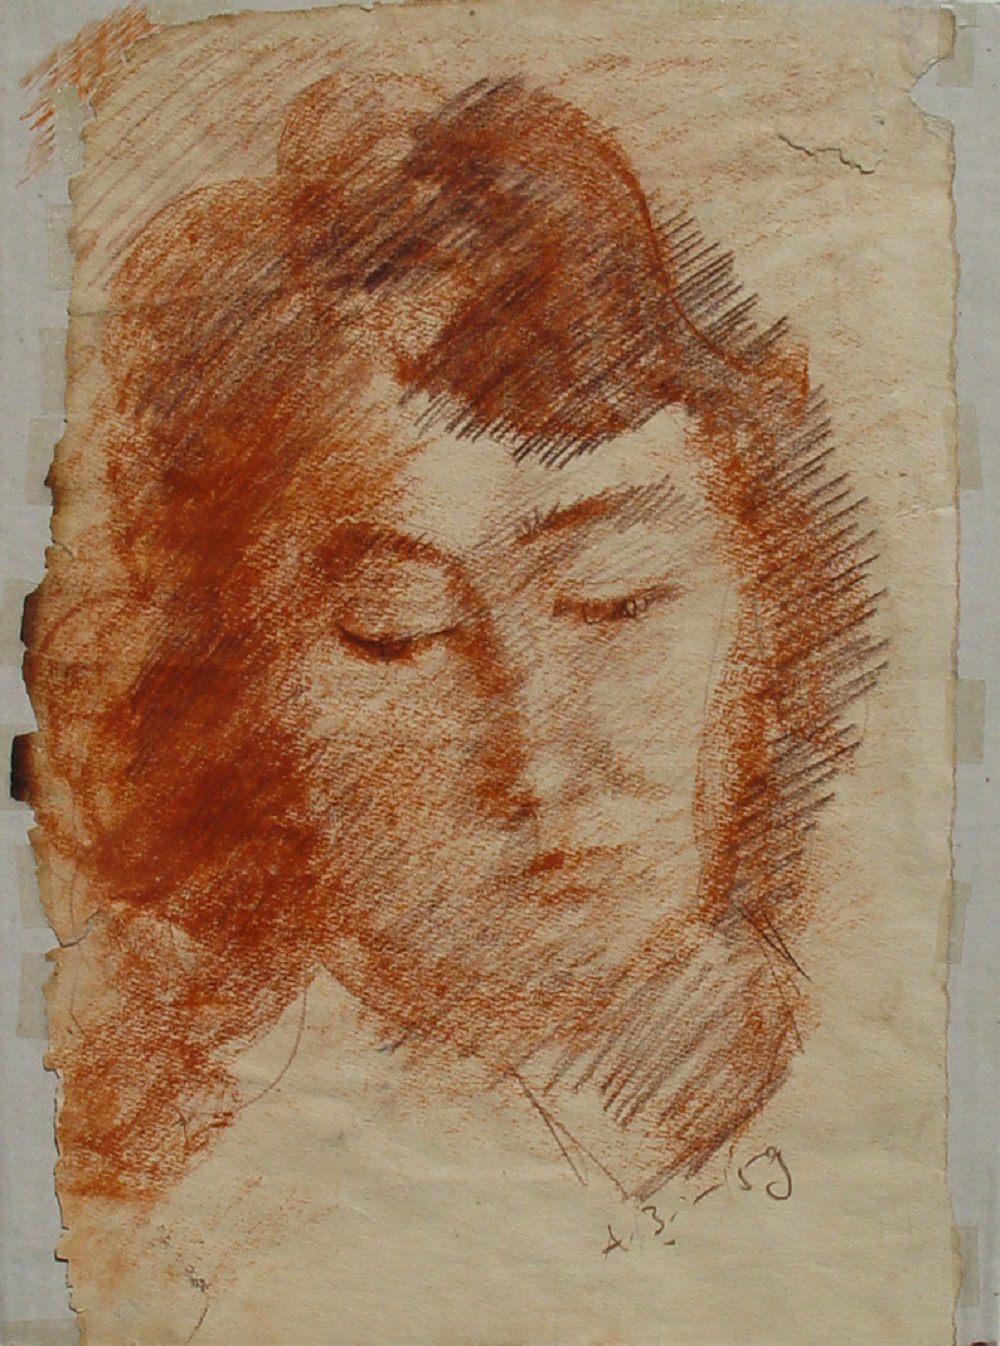 Anatoly Zverev (Russian, 1931-1986) (AR), Zinaida Costakis portrait, pastel on paper, 40 x 28 cm